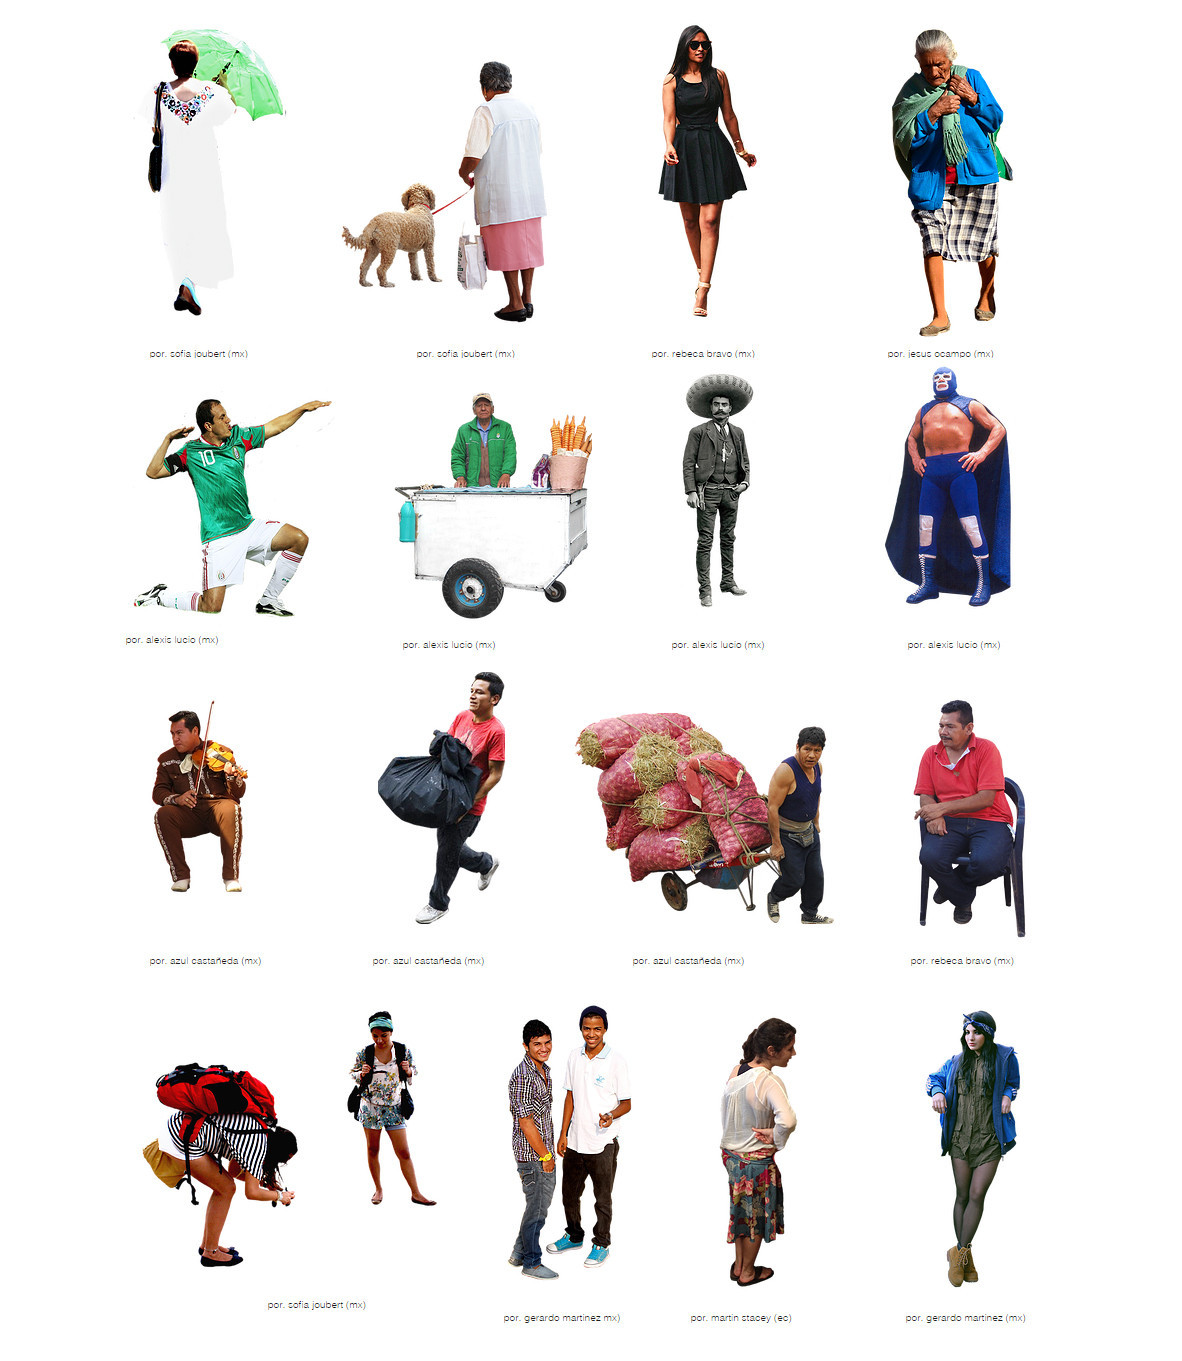 5 places to download free, ethnically diverse render people